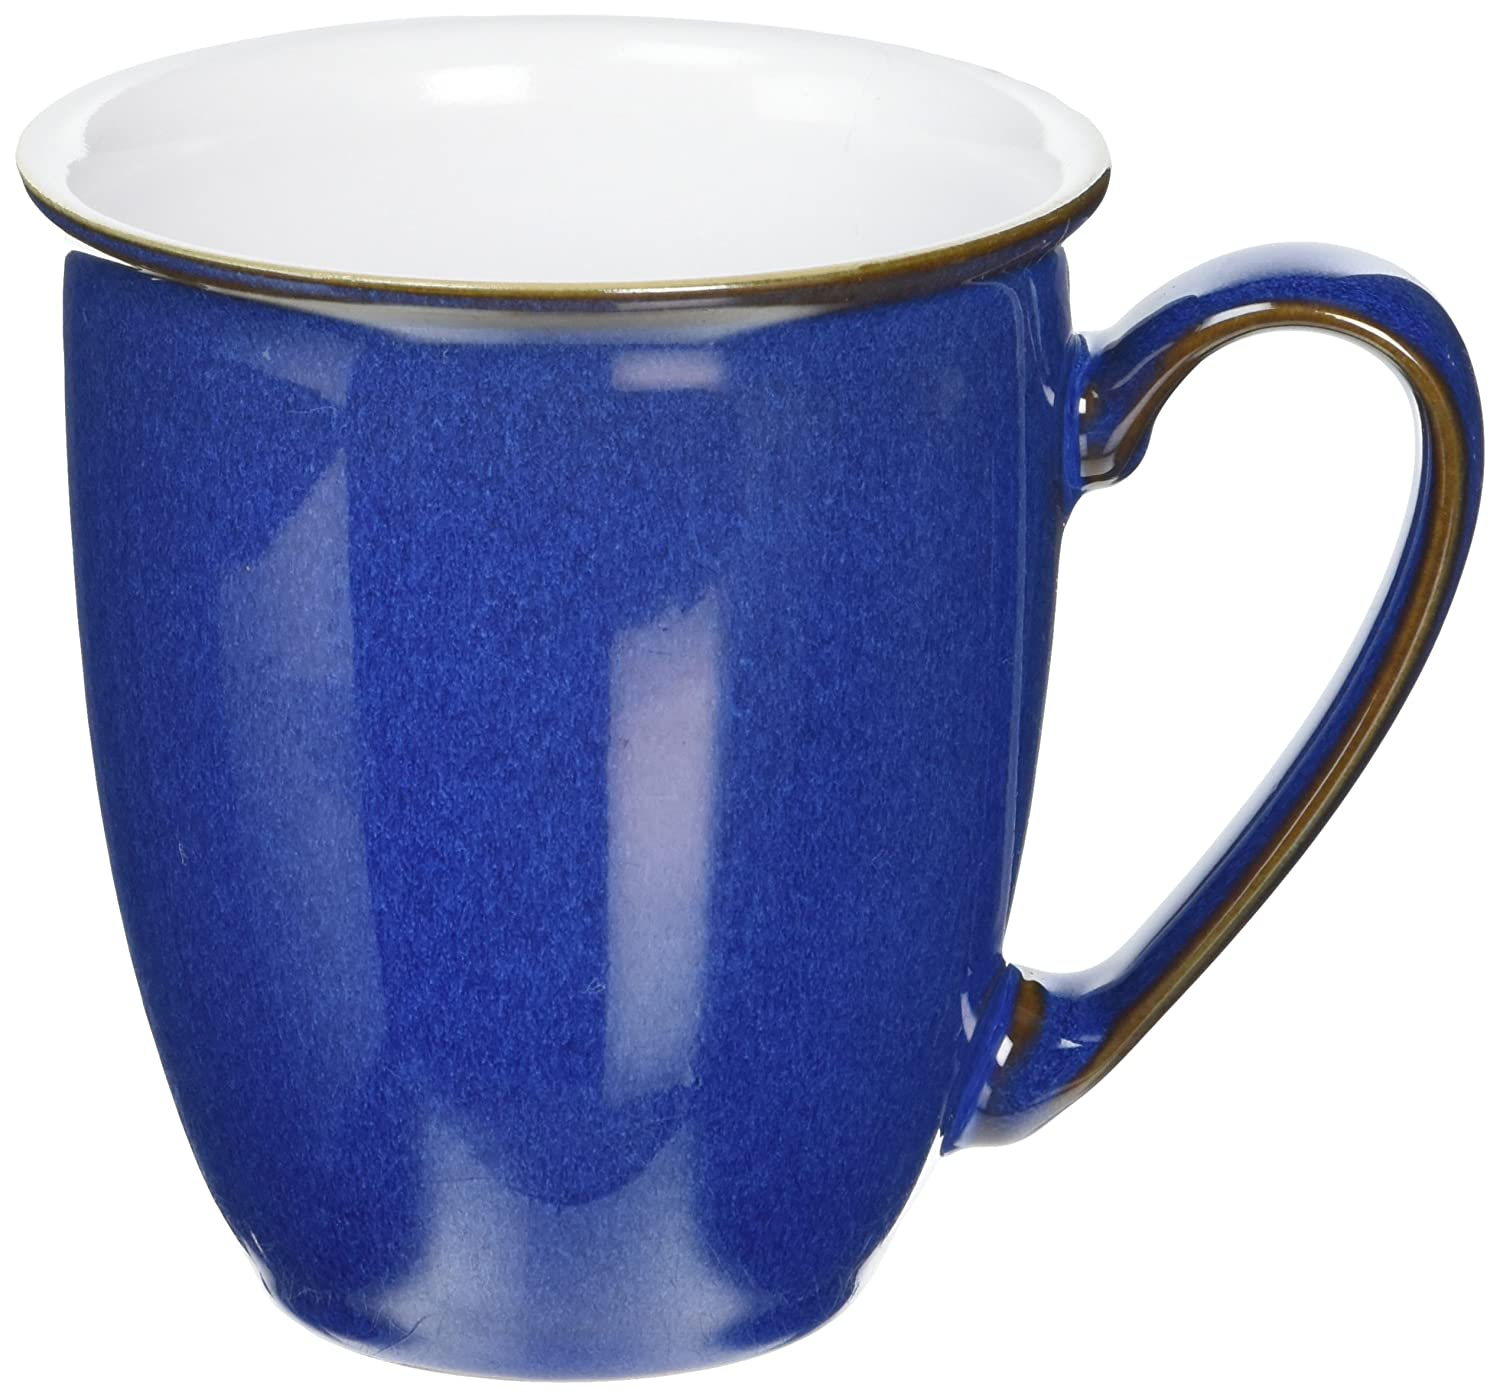 Denby Imperal Blue 2 Piece Mug Set, of 2 001042018